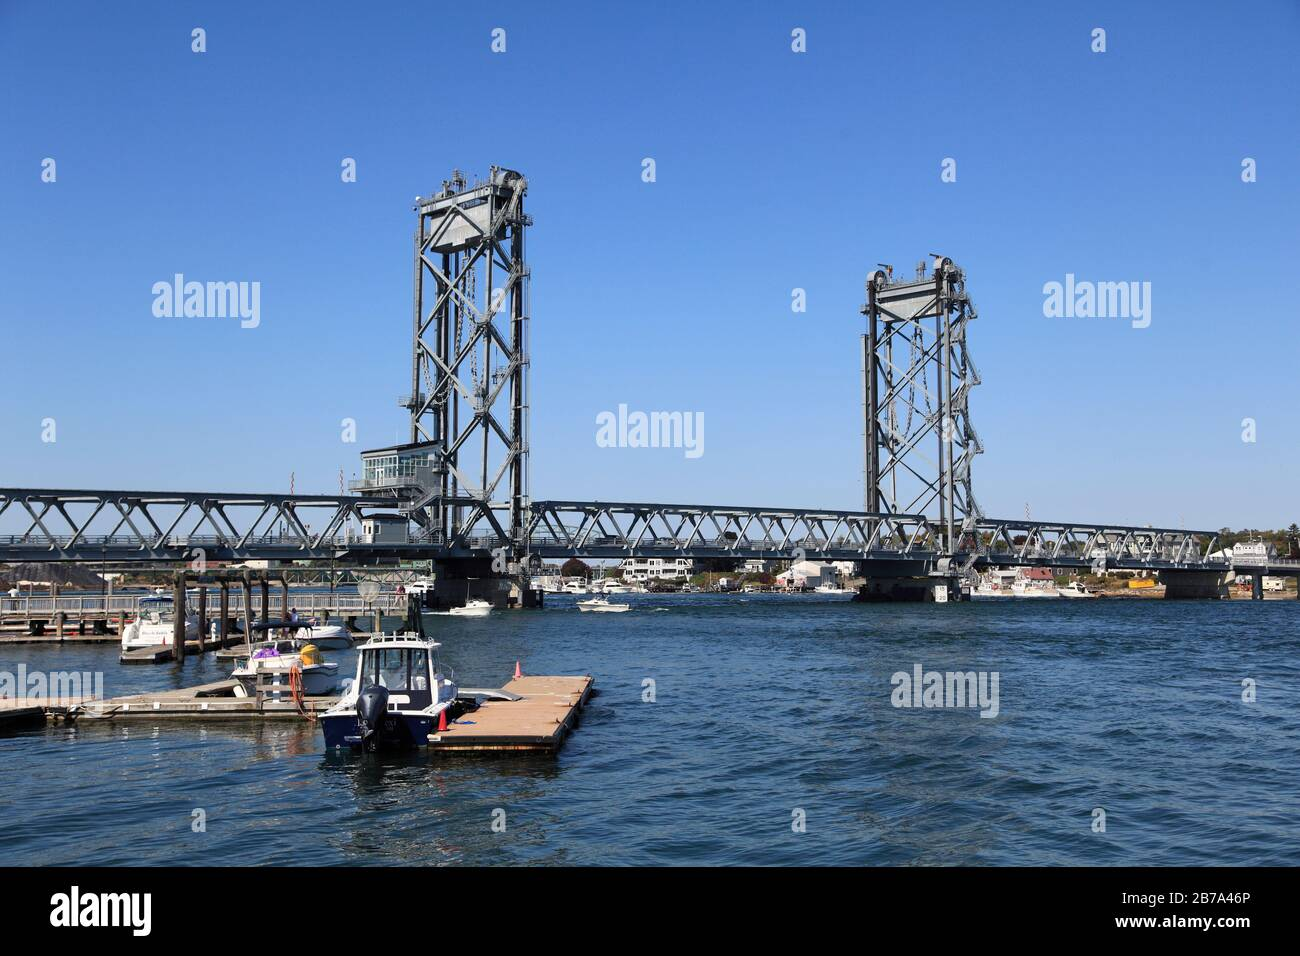 Memorial Bridge Connecting Portsmouth, New Hampshire to Kittery, Maine, Piscataqua River, New England, USA, North America Stock Photo